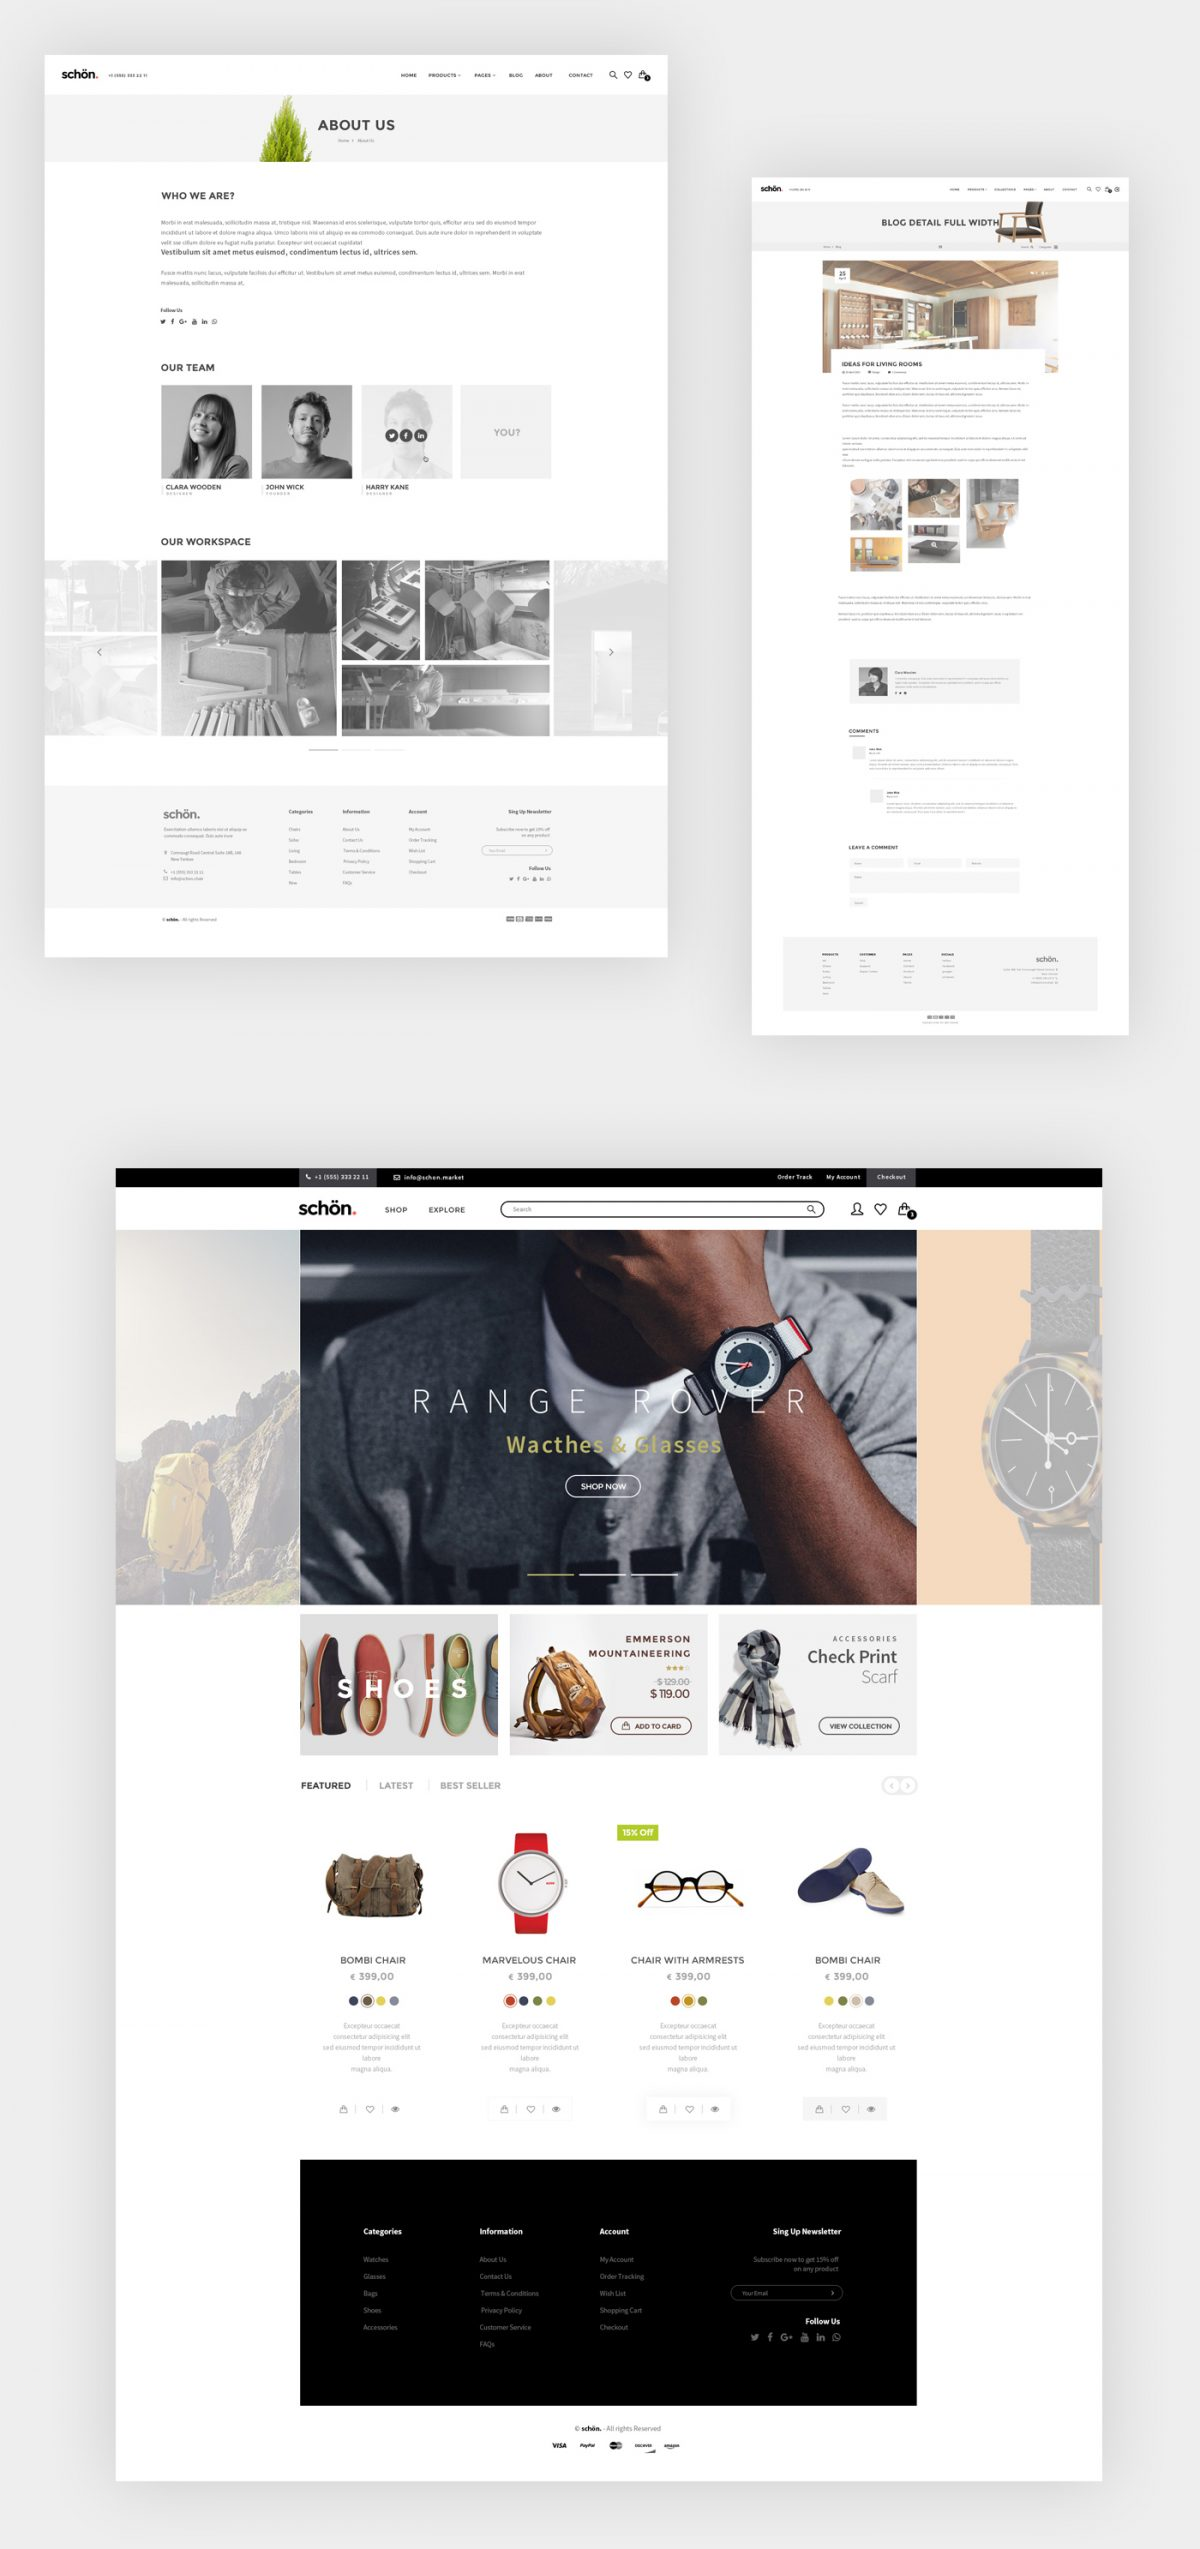 schon-ecommerce-psd-template-6